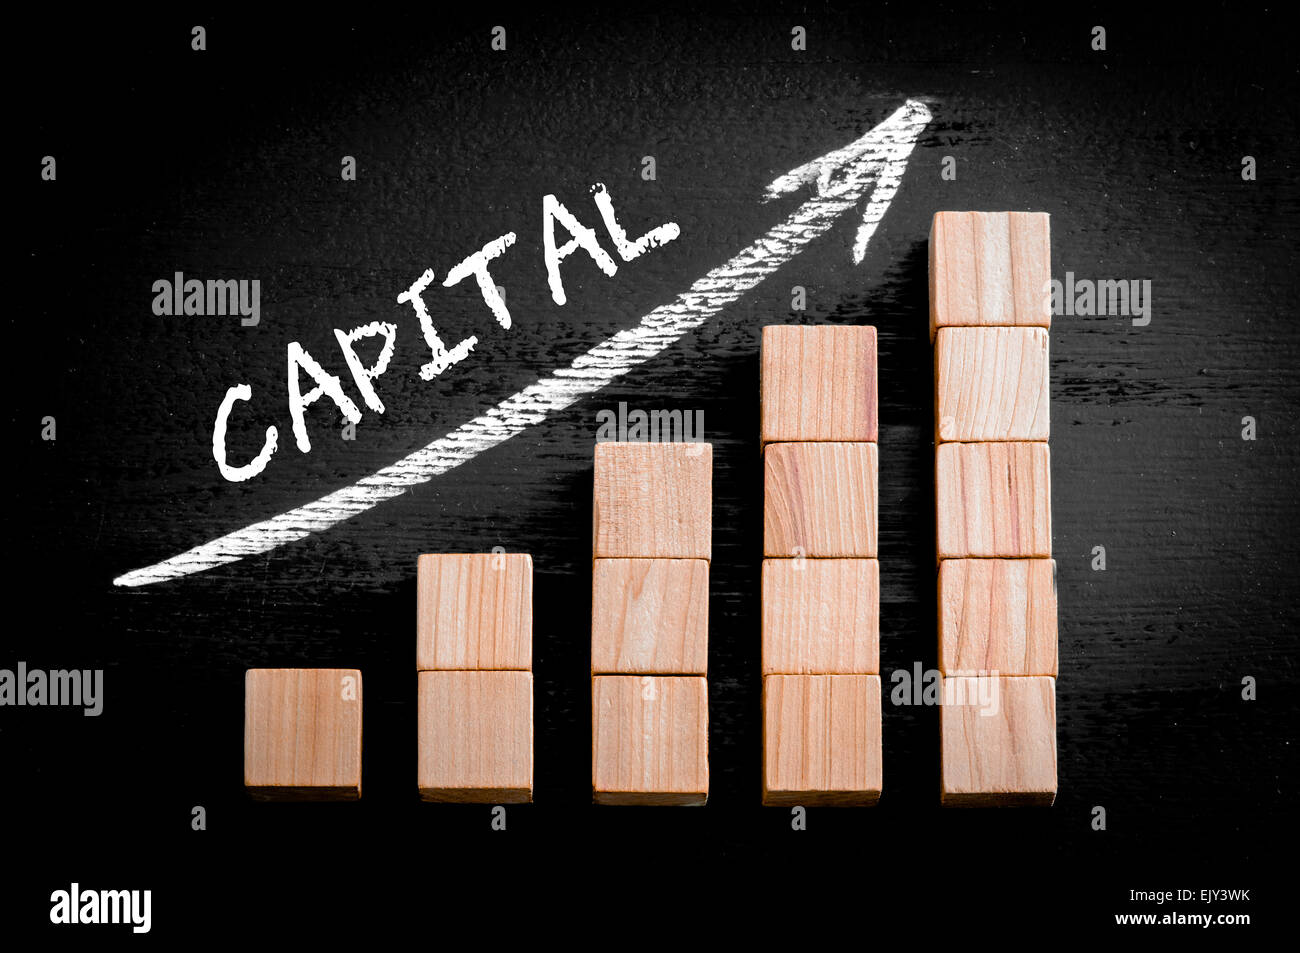 Word Capital on ascending arrow above bar graph of Wooden small cubes isolated on black background. Chalk drawing - Stock Image